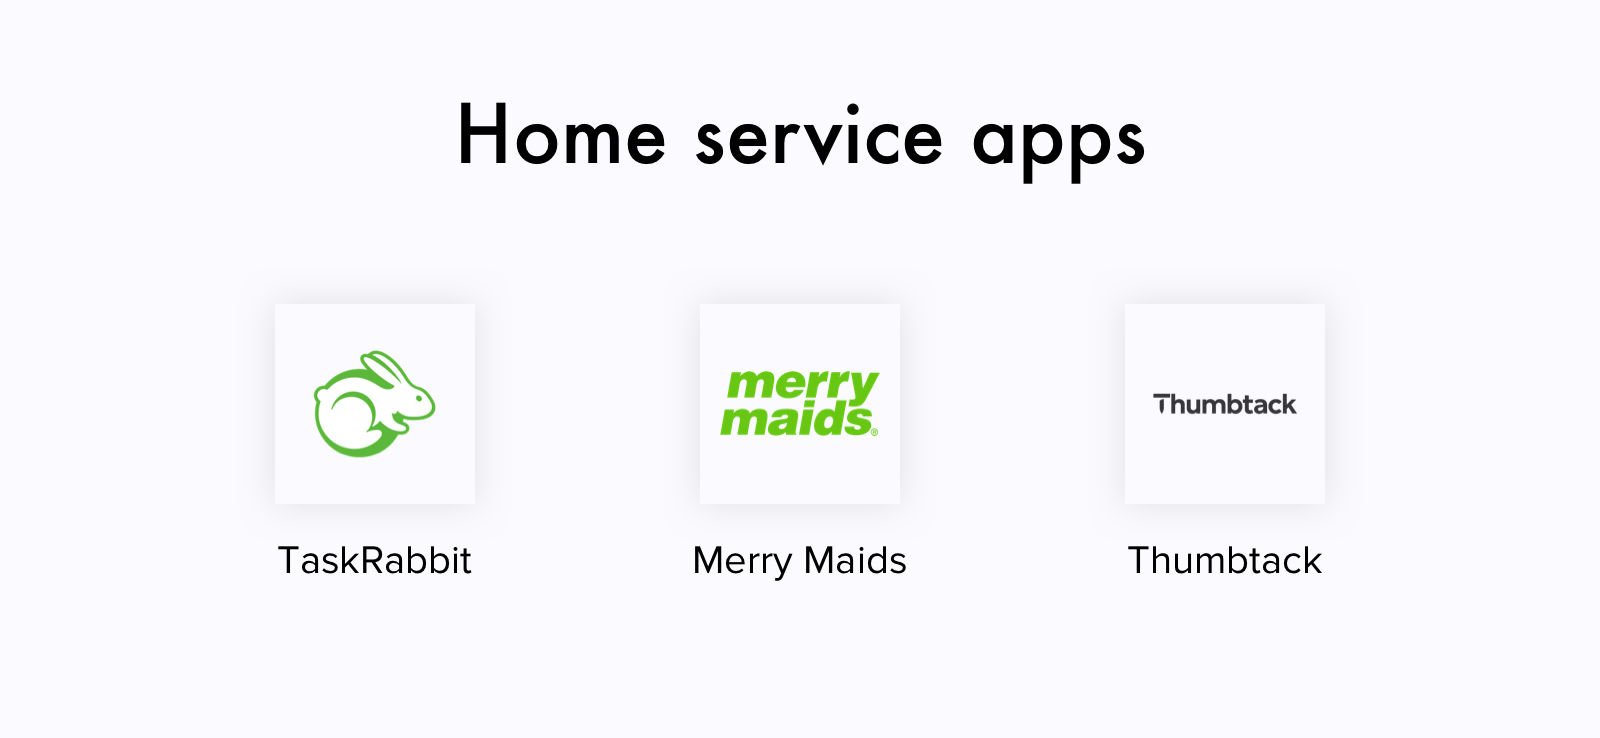 Home service apps